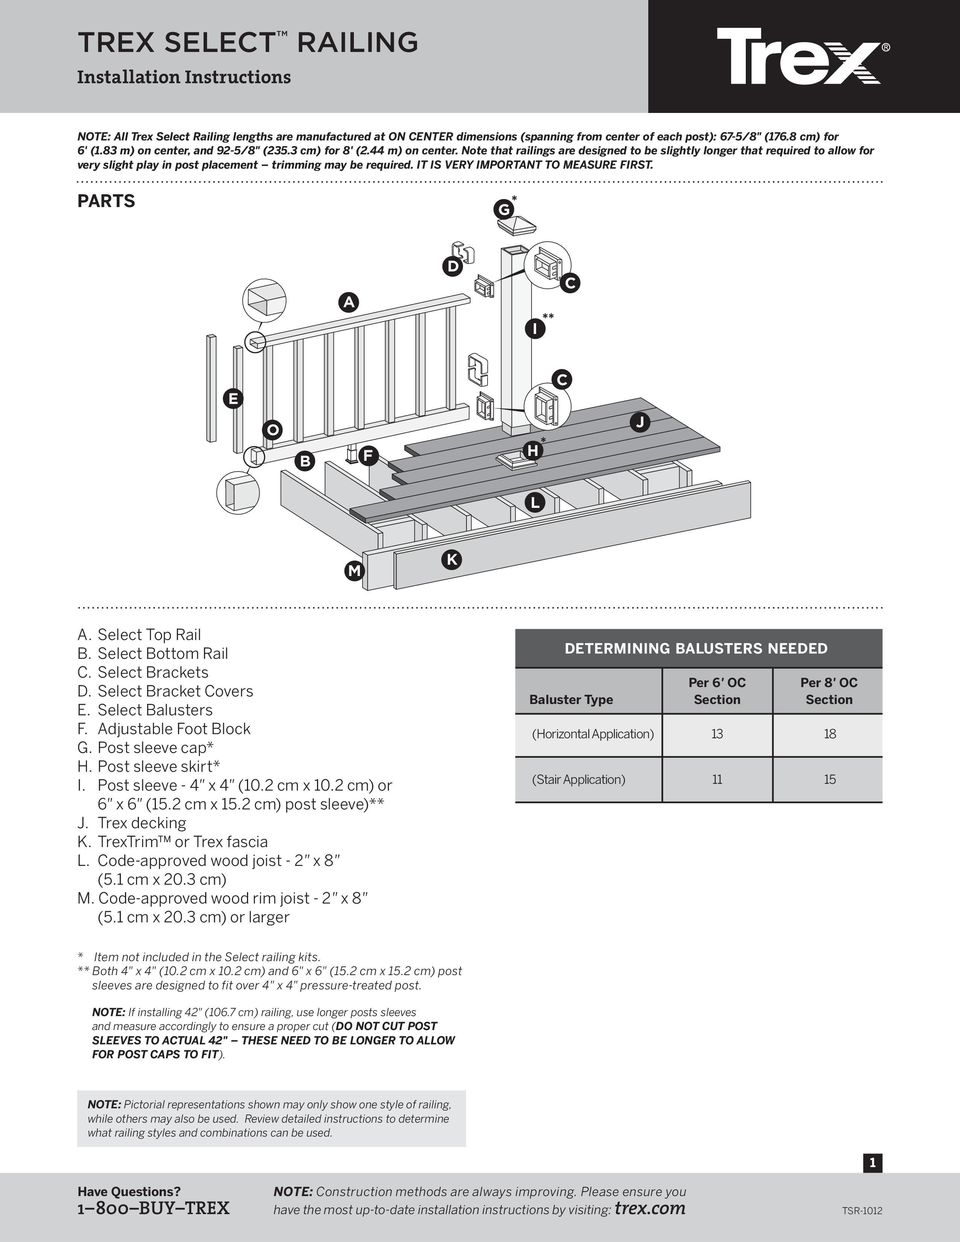 TREX SELECT RAILING  Installation Instructions BUY TREX